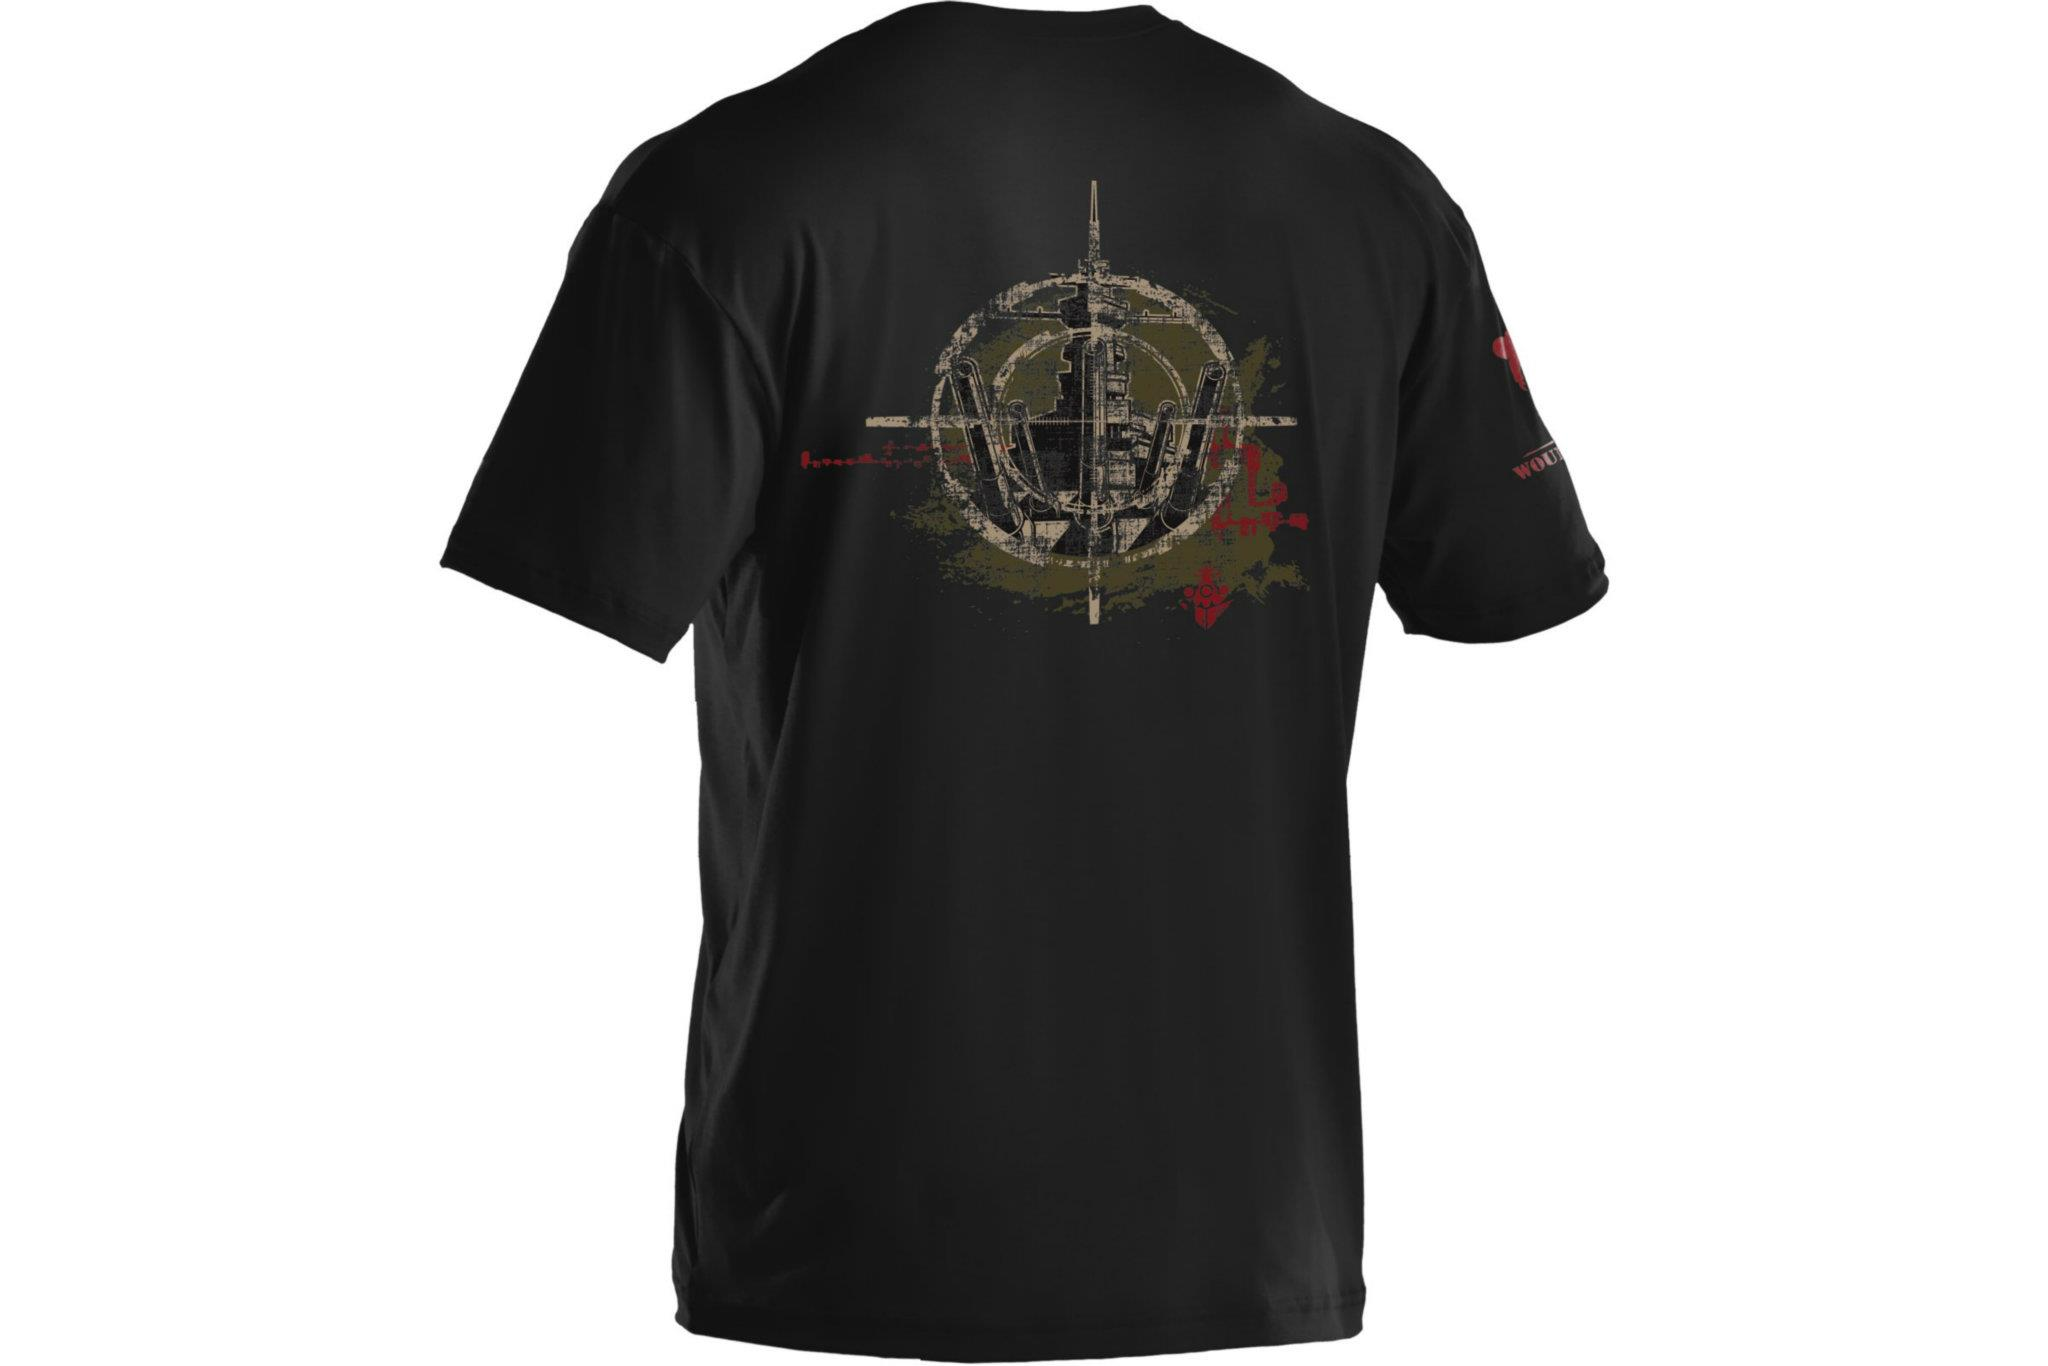 Under Armour Wounded Warrior Project Battleship T Shirts